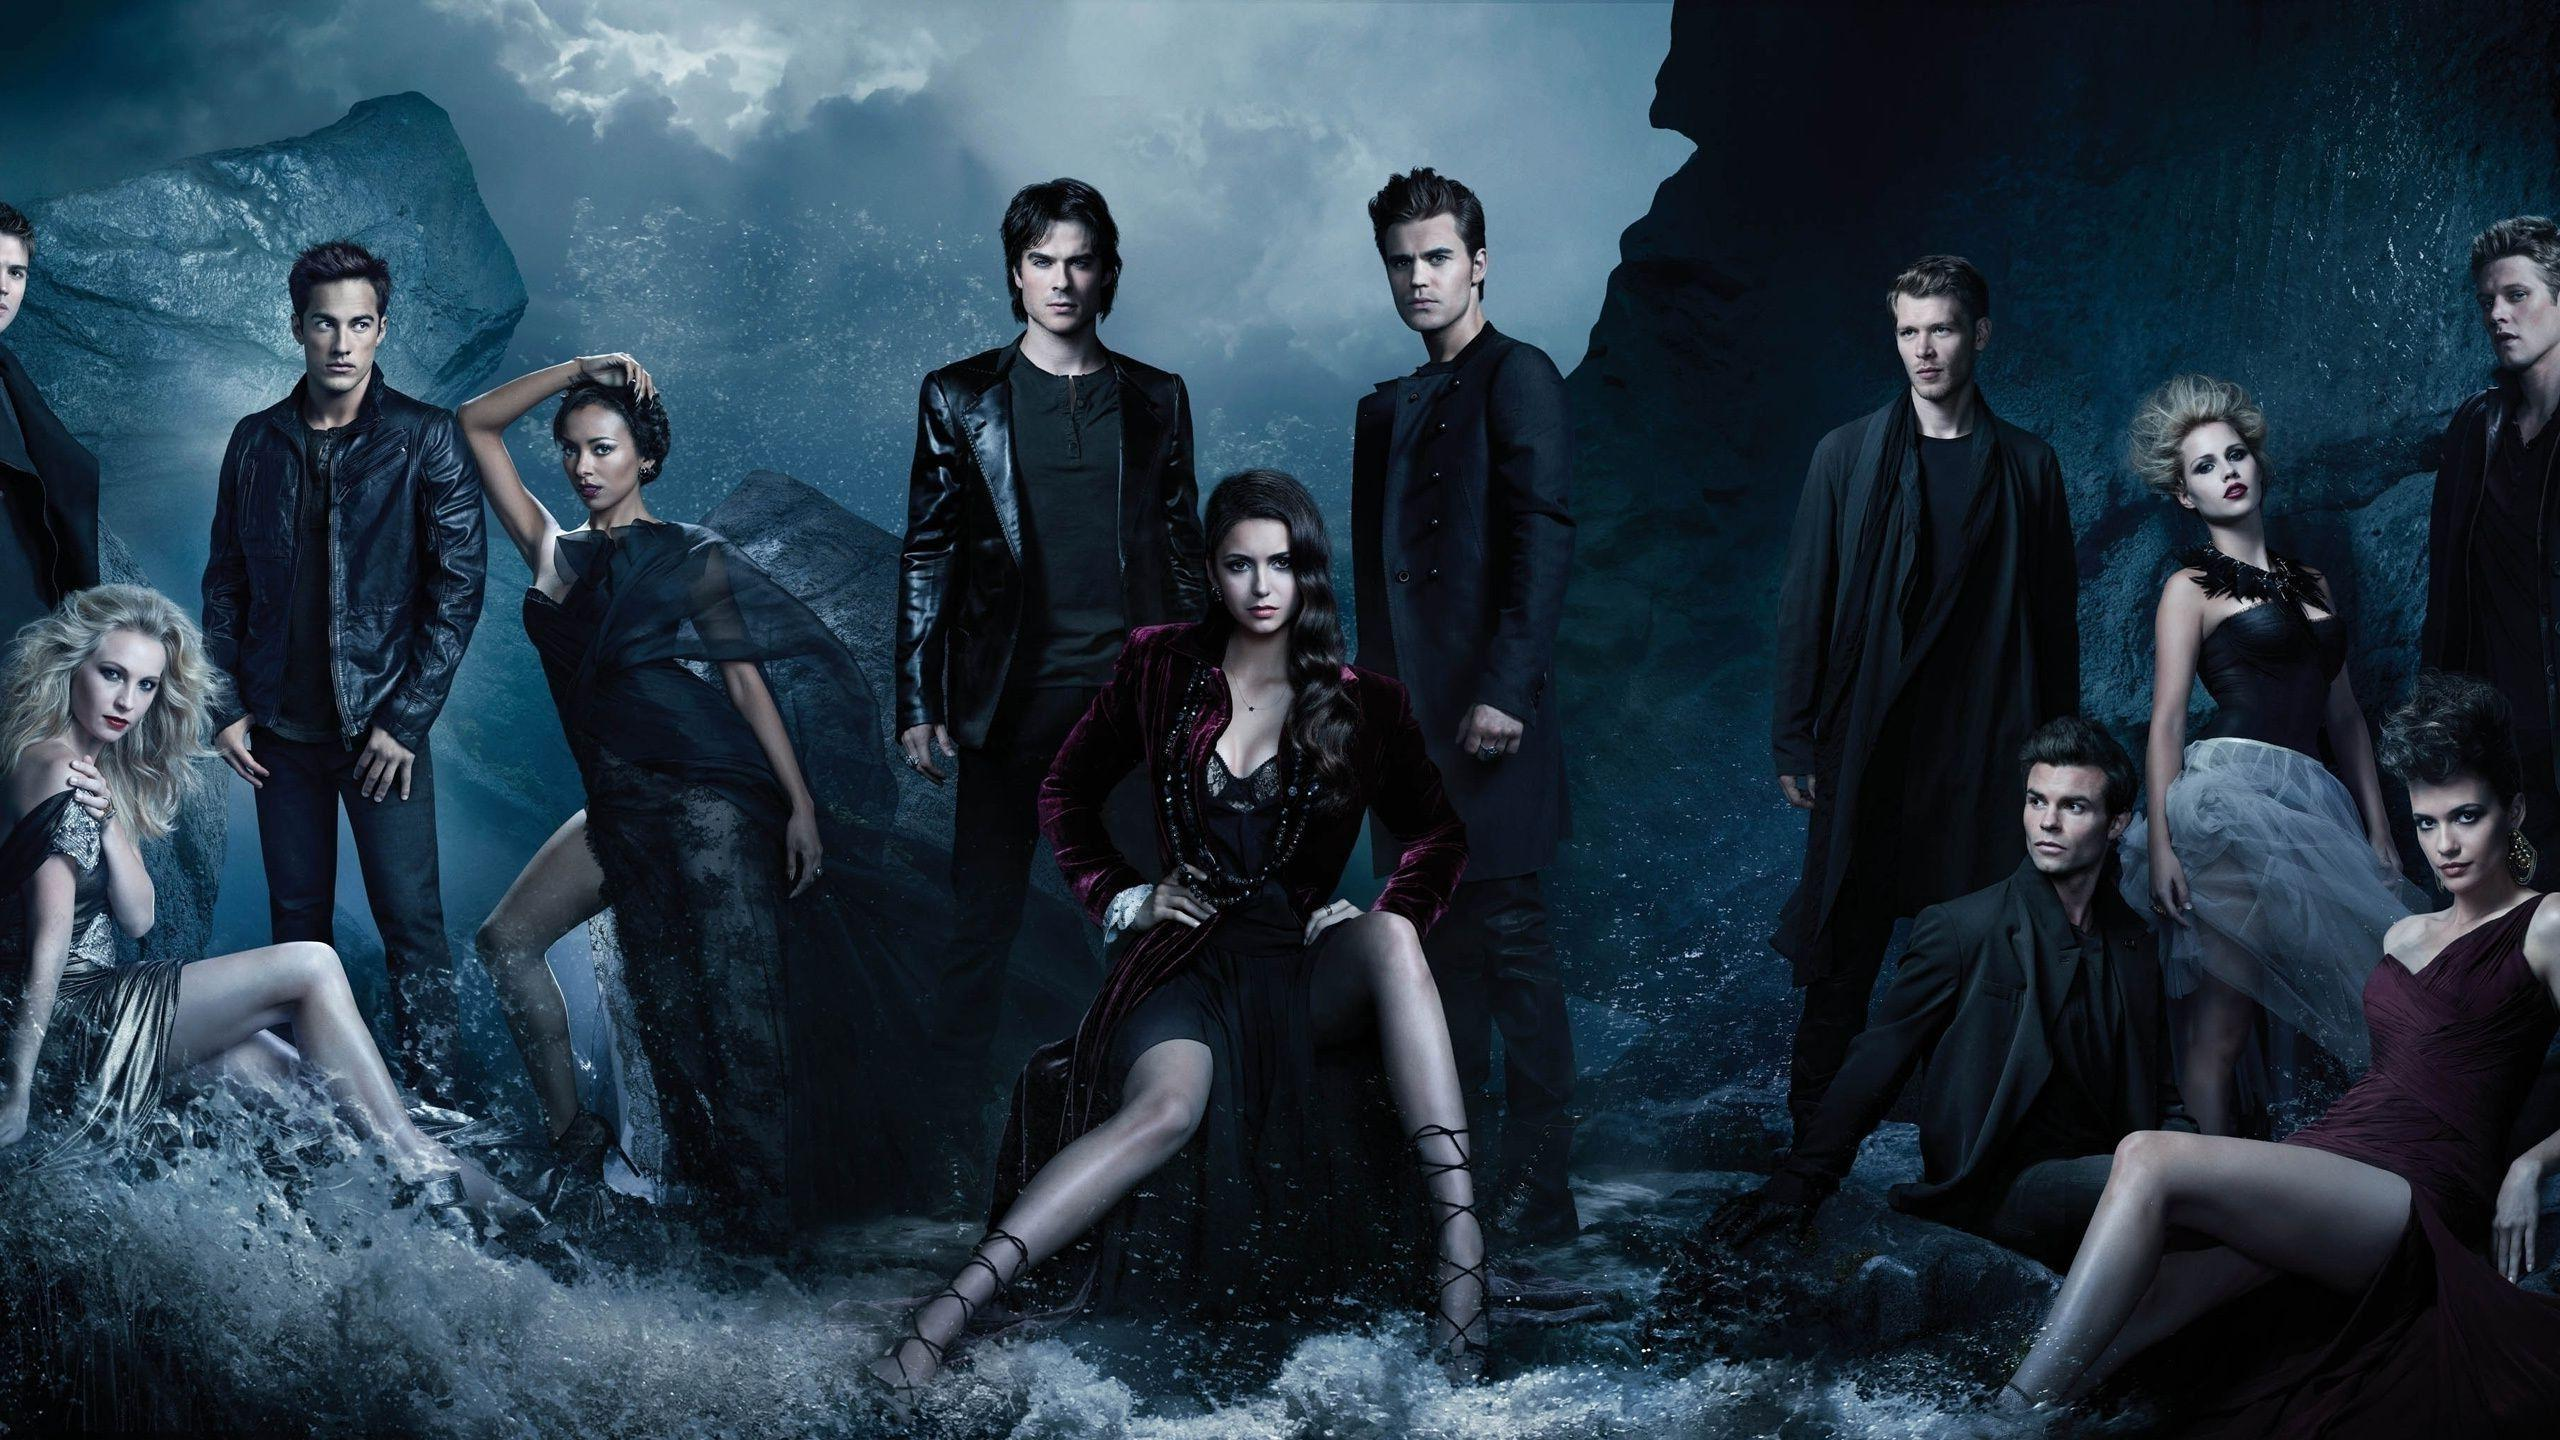 Wallpapers : midnight, Nina Dobrev, The Vampire Diaries, Elena